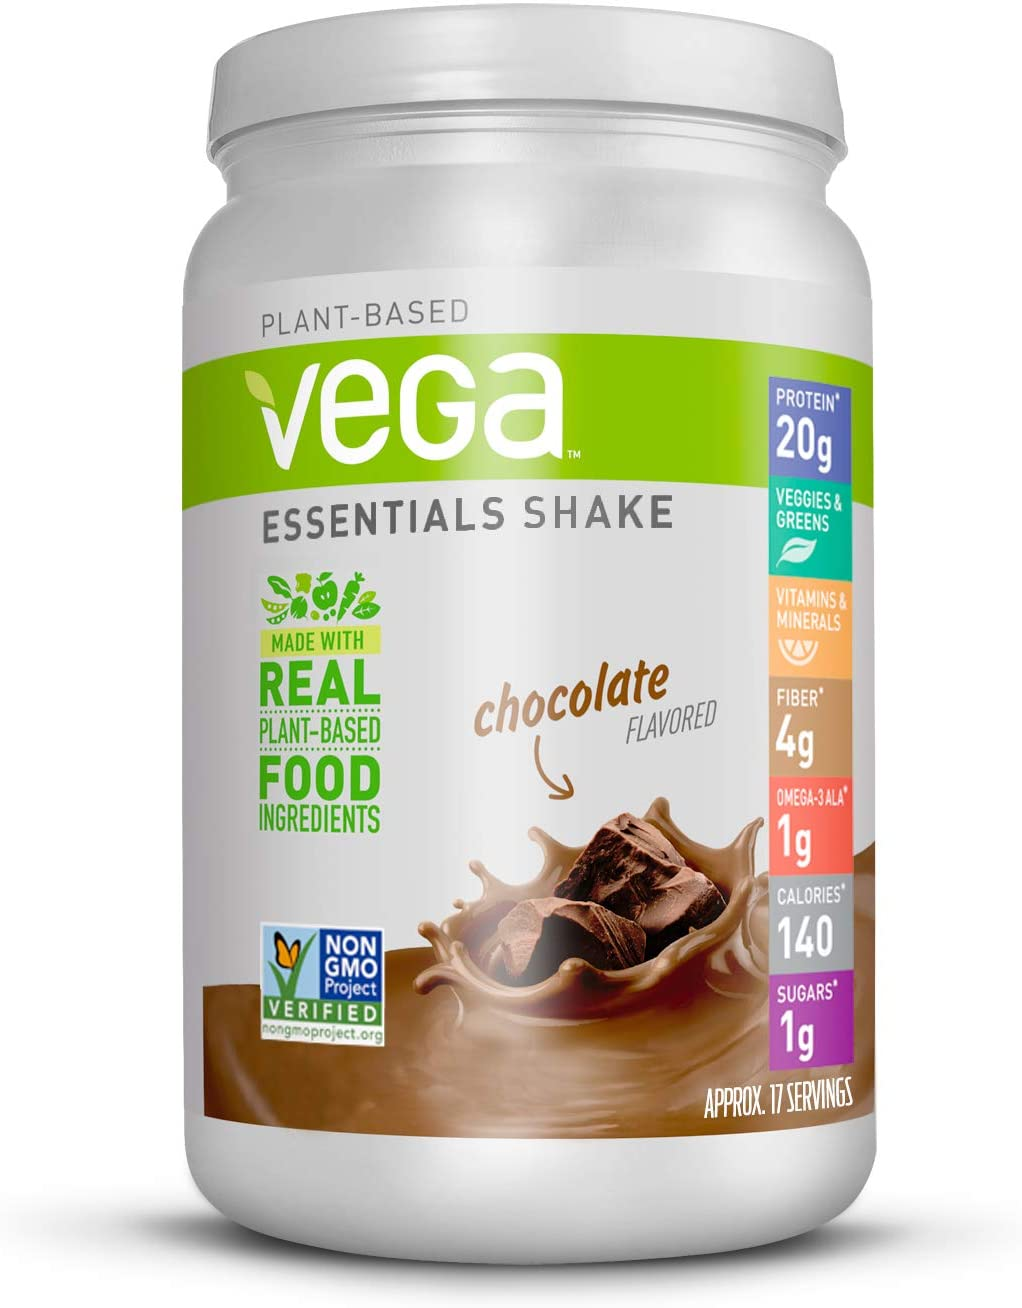 Vega Essentials Protein Powder, Chocolate, Plant Based Protein Powder Plus Vitamins, Minerals and Antioxidants - Vegan, Vegetarian, Keto-Friendly, Gluten Free, Dairy Free (17 Servings, 1lb 5.6oz): Health & Personal Care